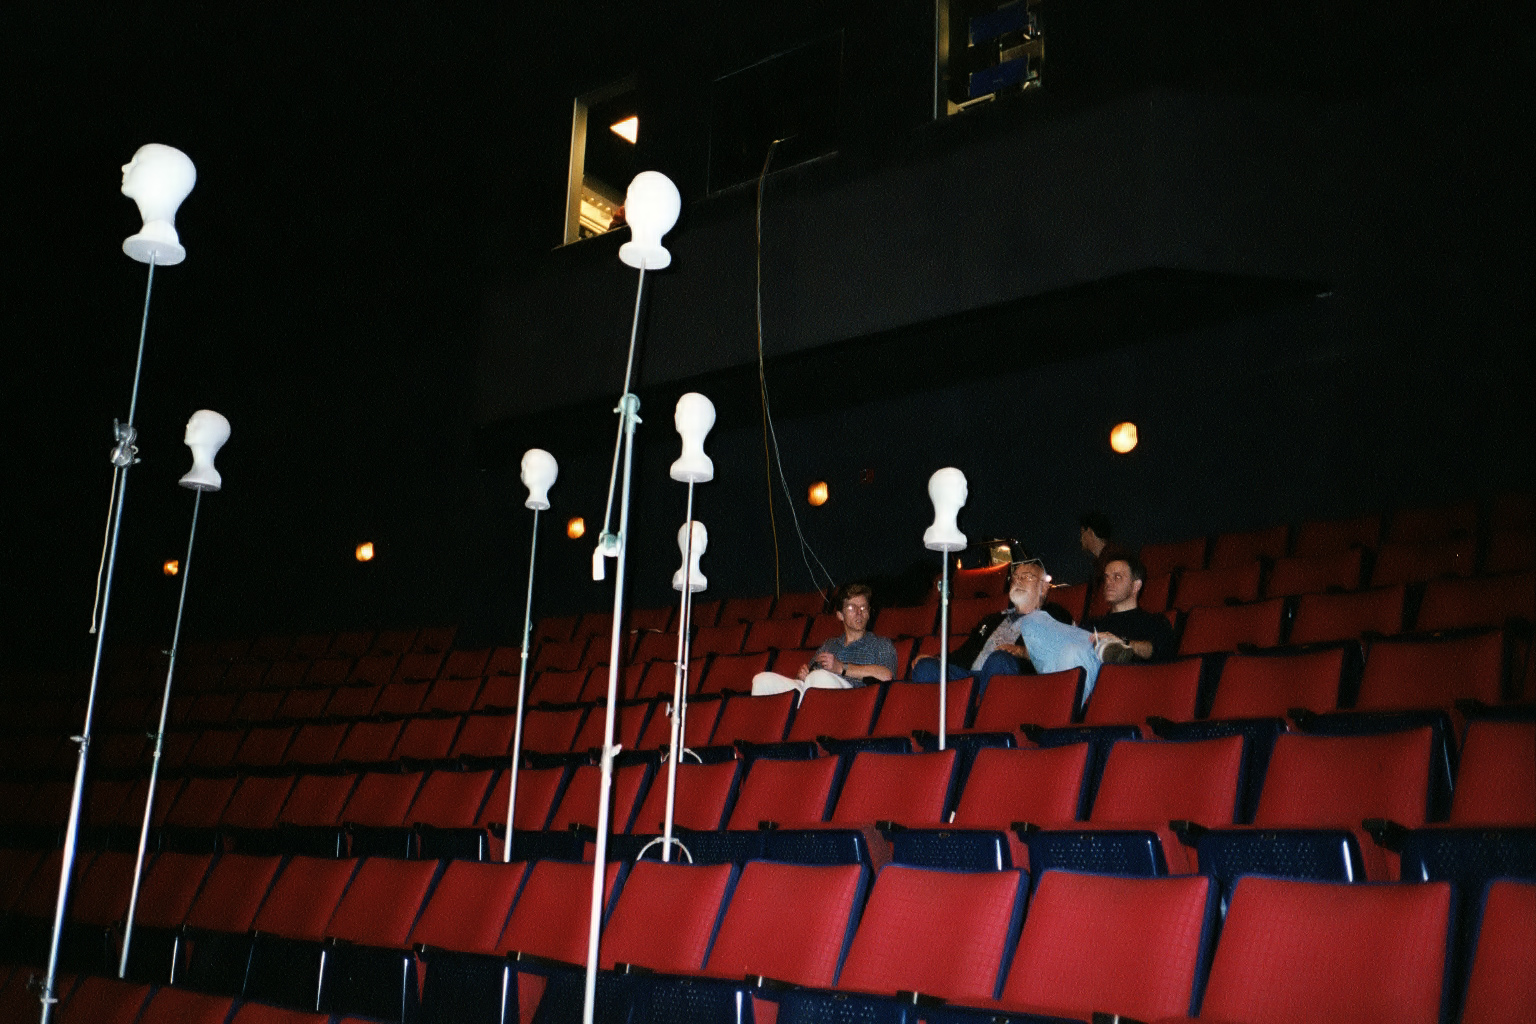 With Peter Anderson A.S.C. in production on Sesame Street 4D. The styrofoam heads were used in the stadium seating to get an idea what the audience would see.